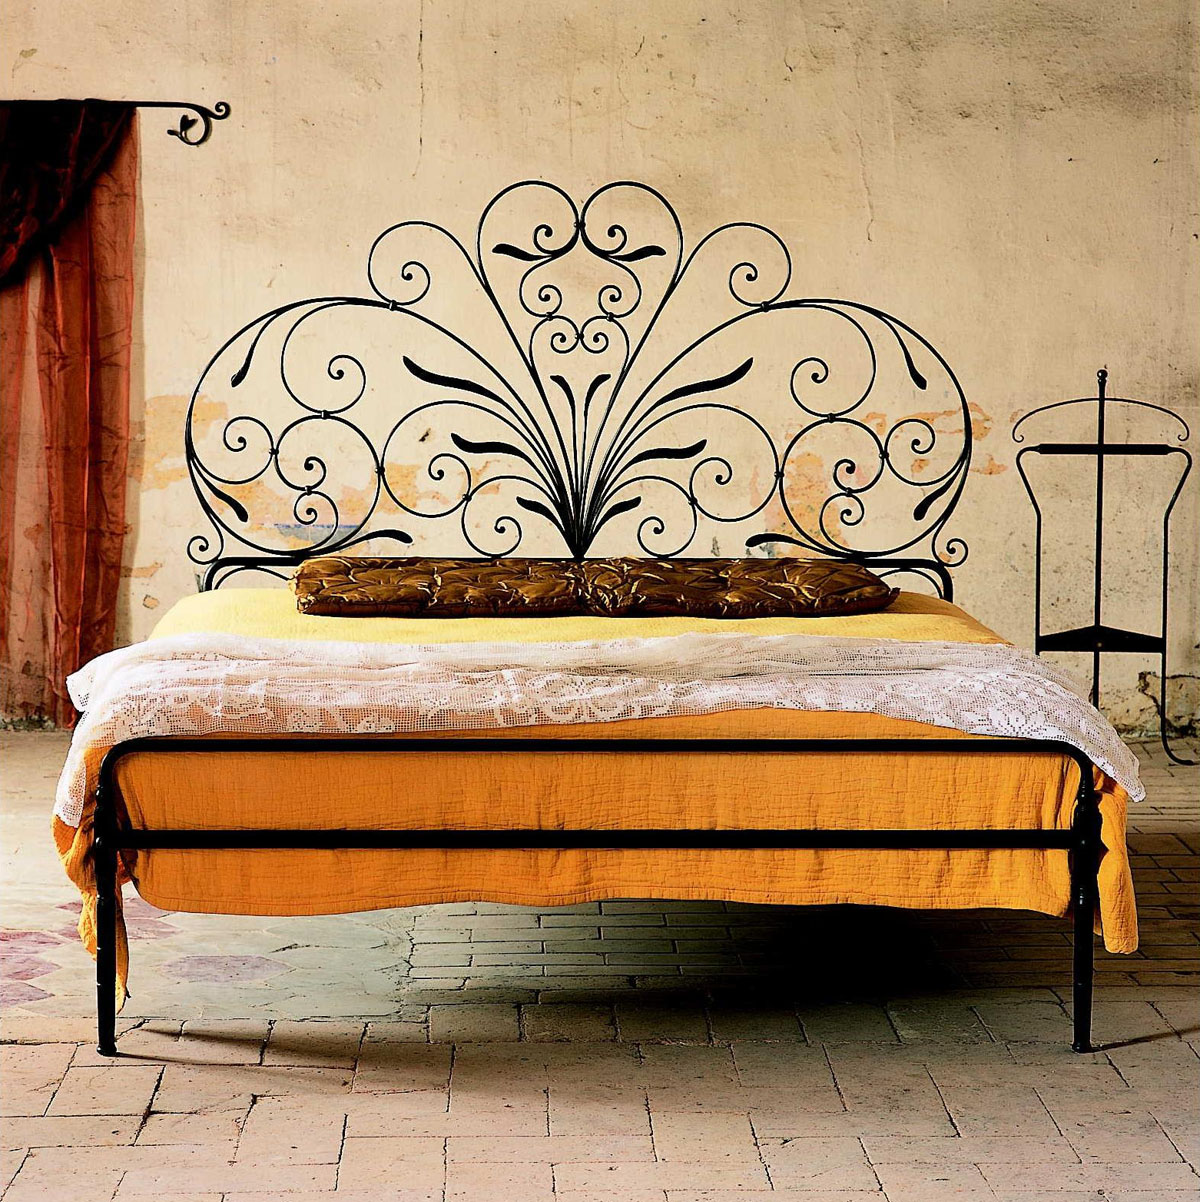 Tuscan beds design ideas idesignarch interior design for Old world style beds